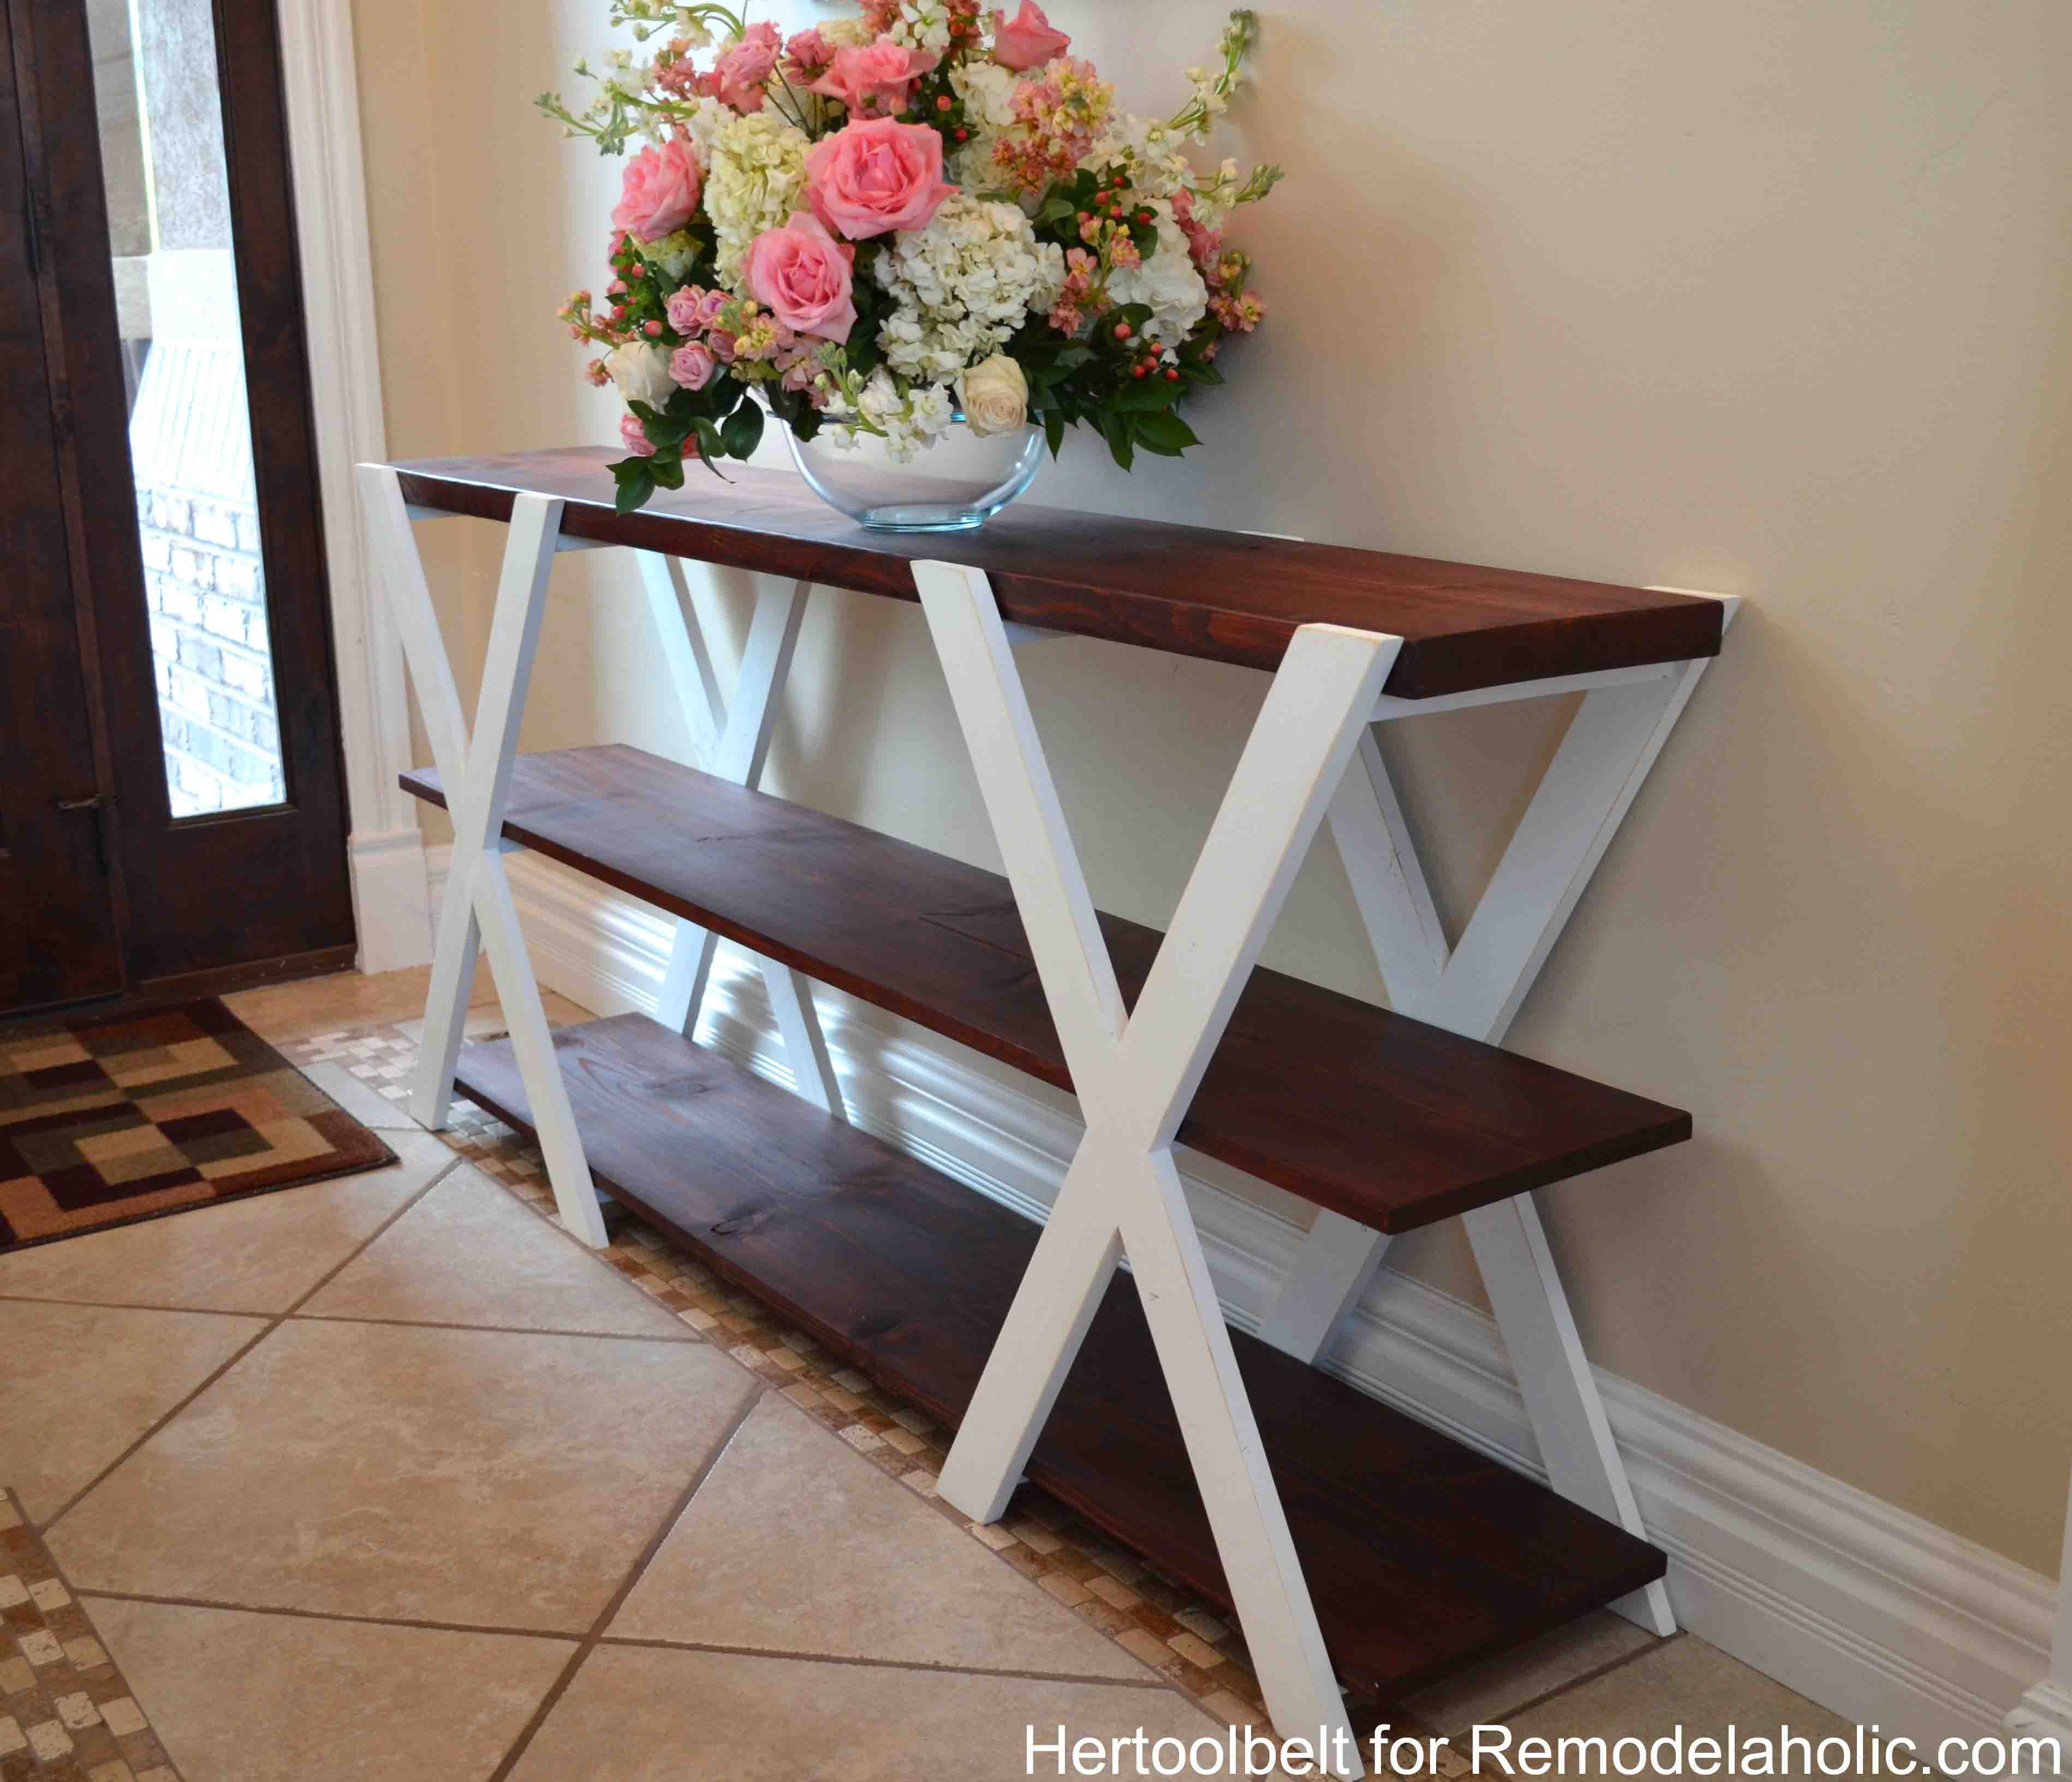 Best ideas about DIY Table Planners . Save or Pin Remodelaholic Now.